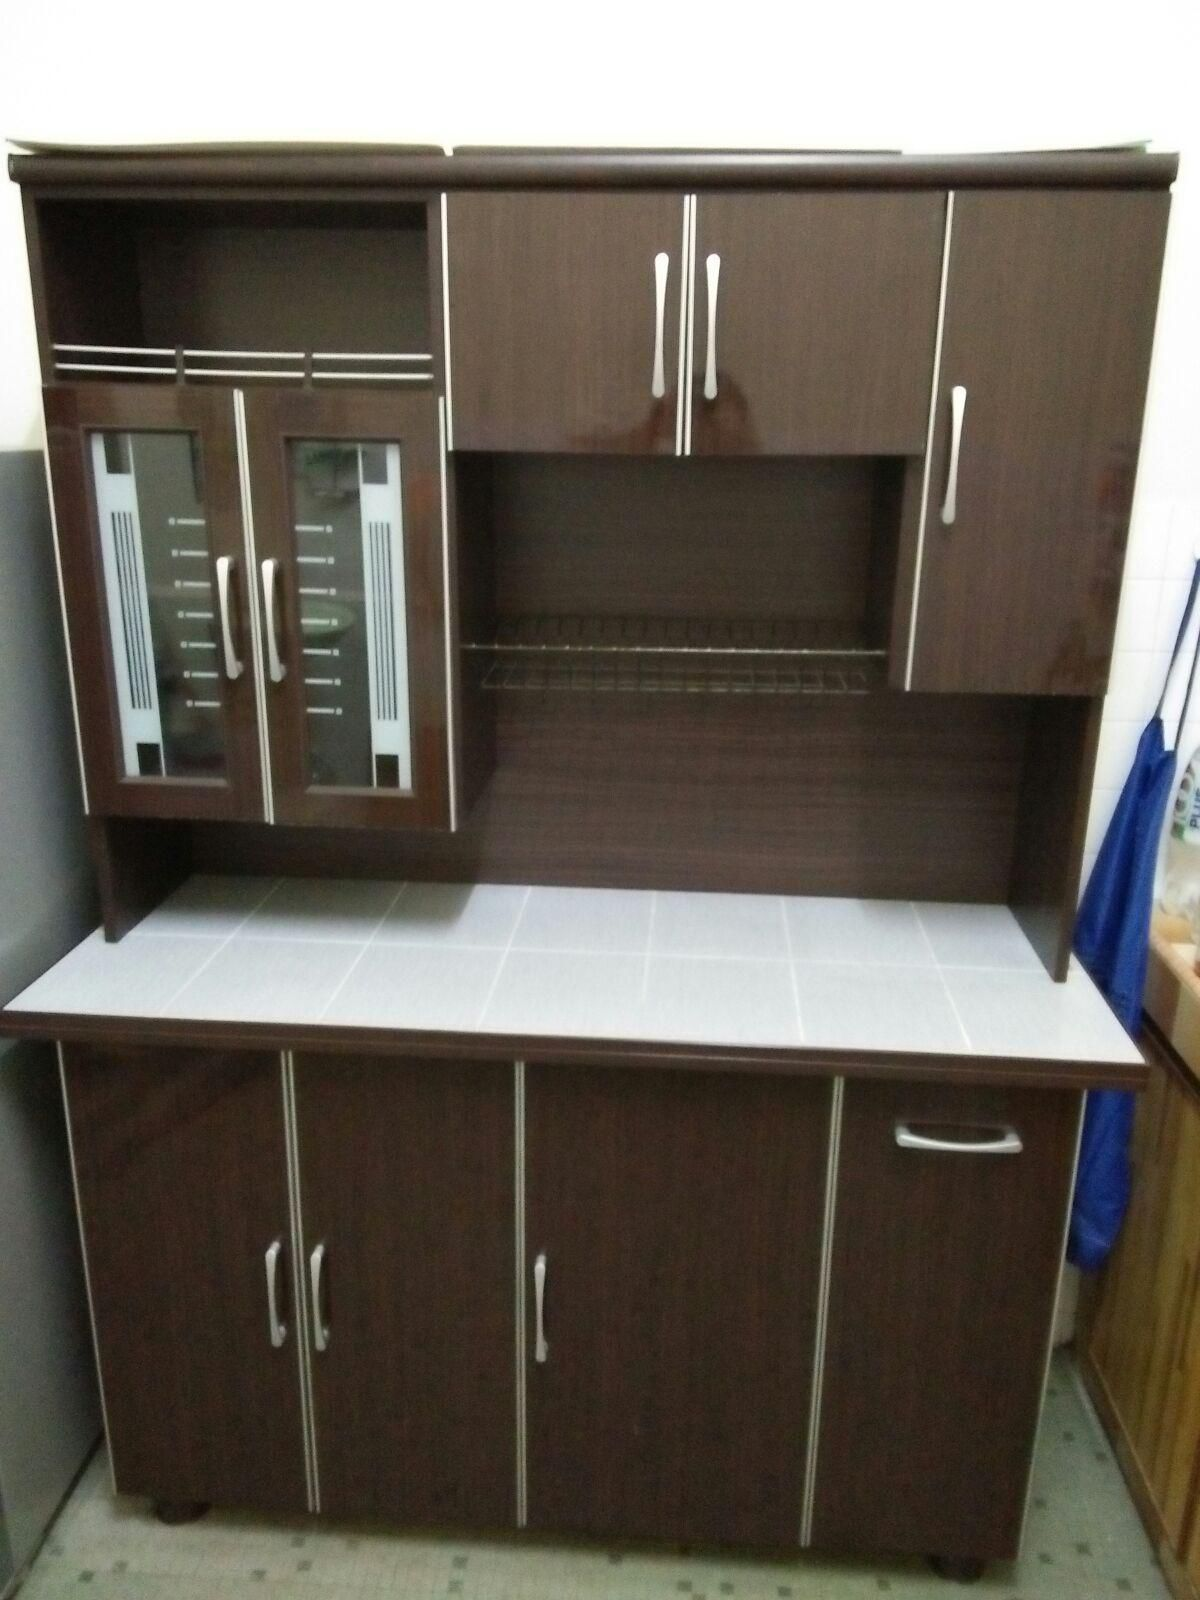 Portable Kitchen Cabinet Secondhand My